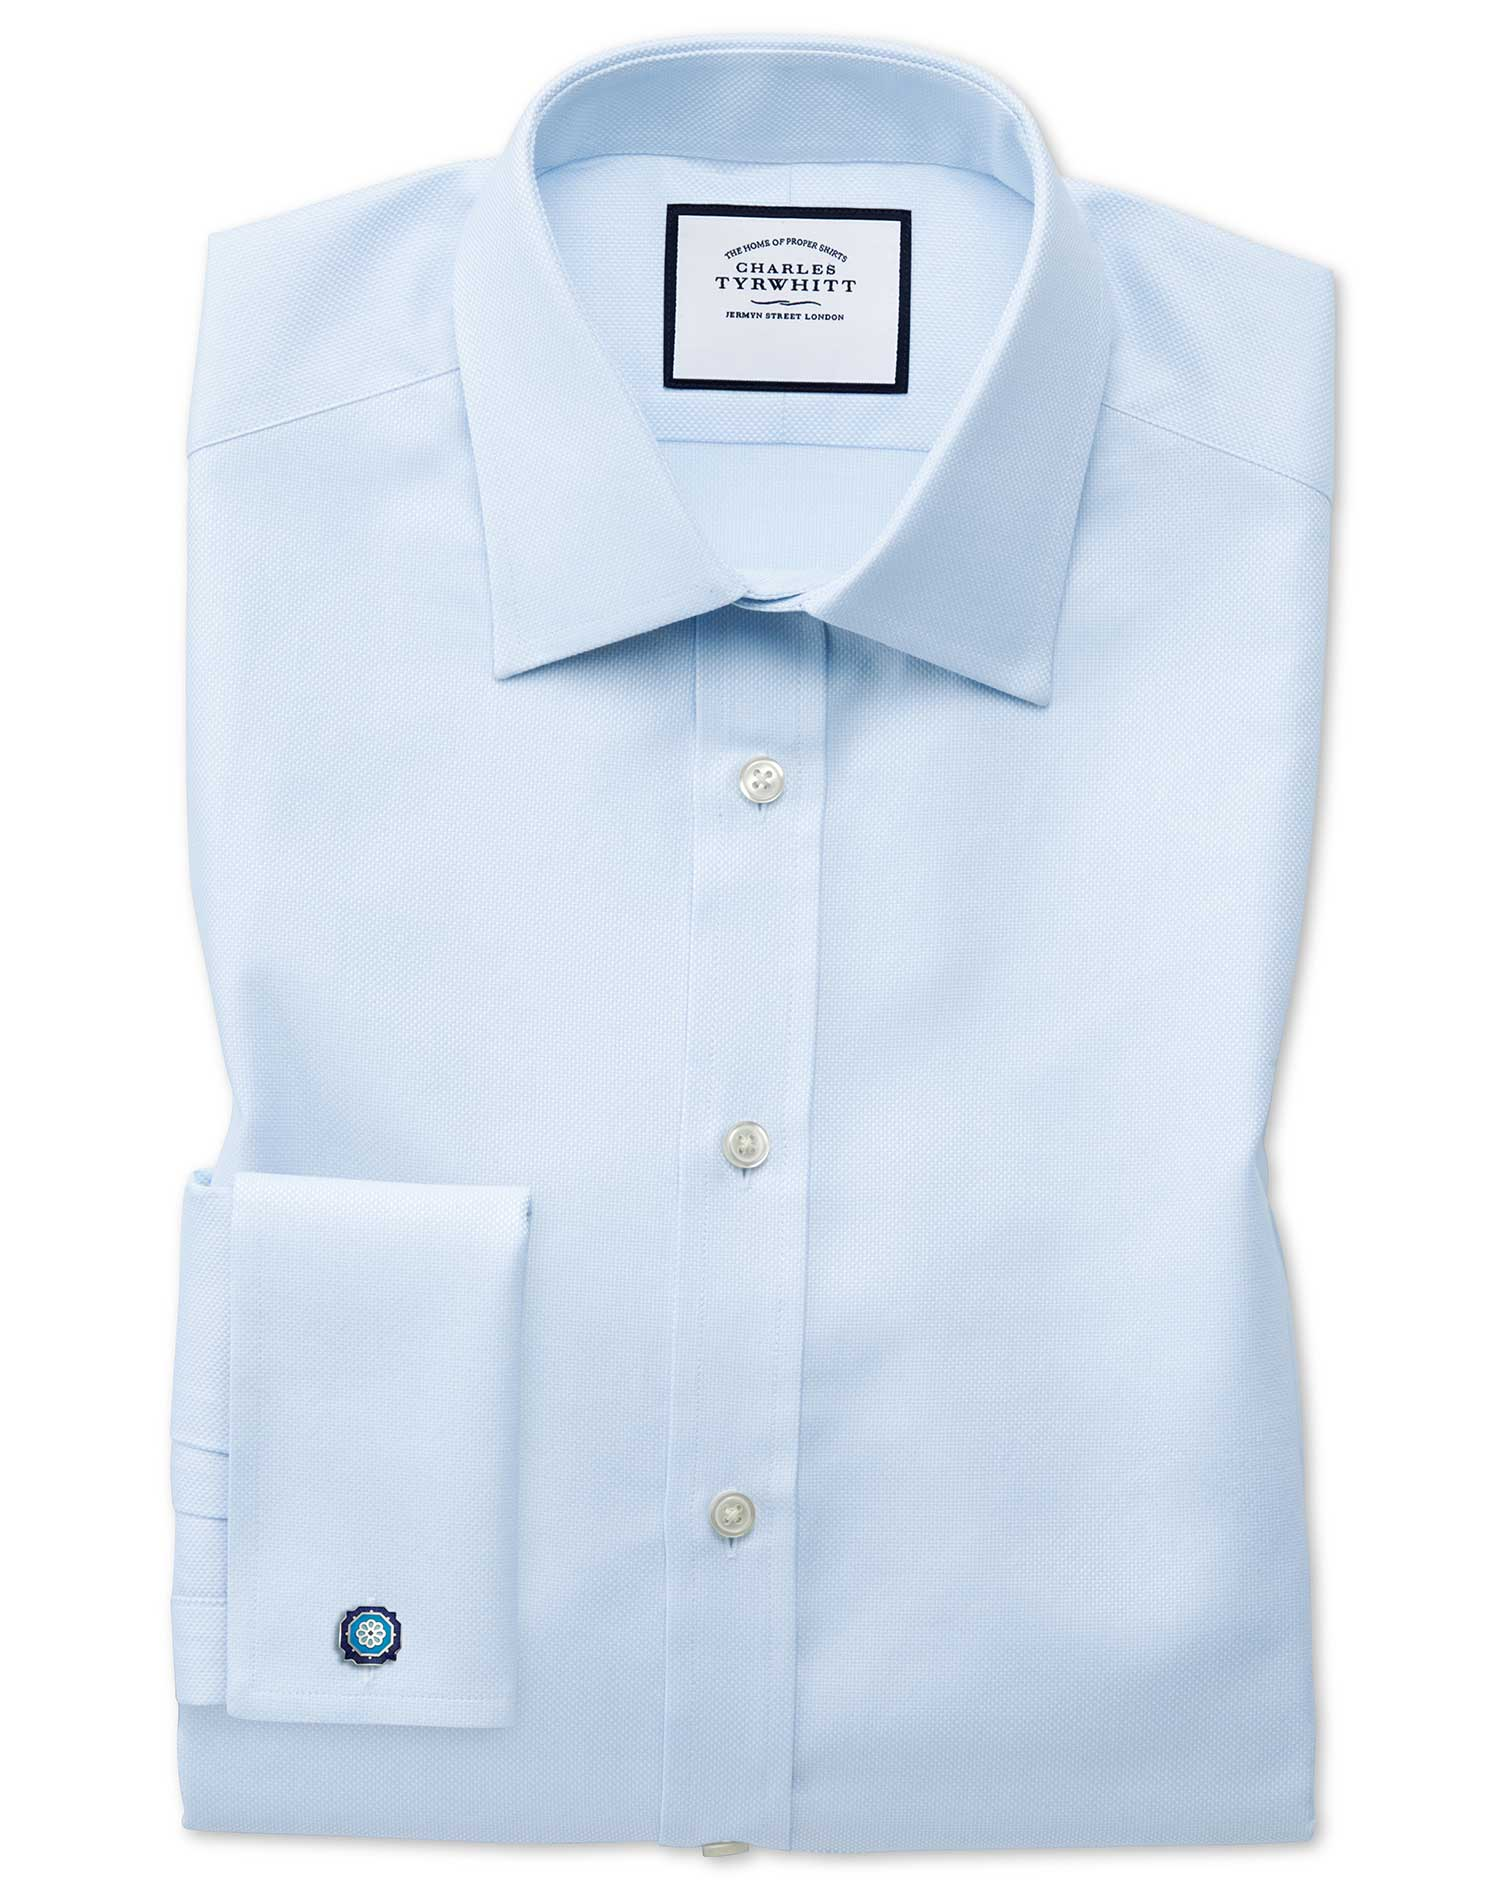 Classic Fit Egyptian Cotton Royal Oxford Sky Blue Formal Shirt Double Cuff Size 16/34 by Charles Tyr